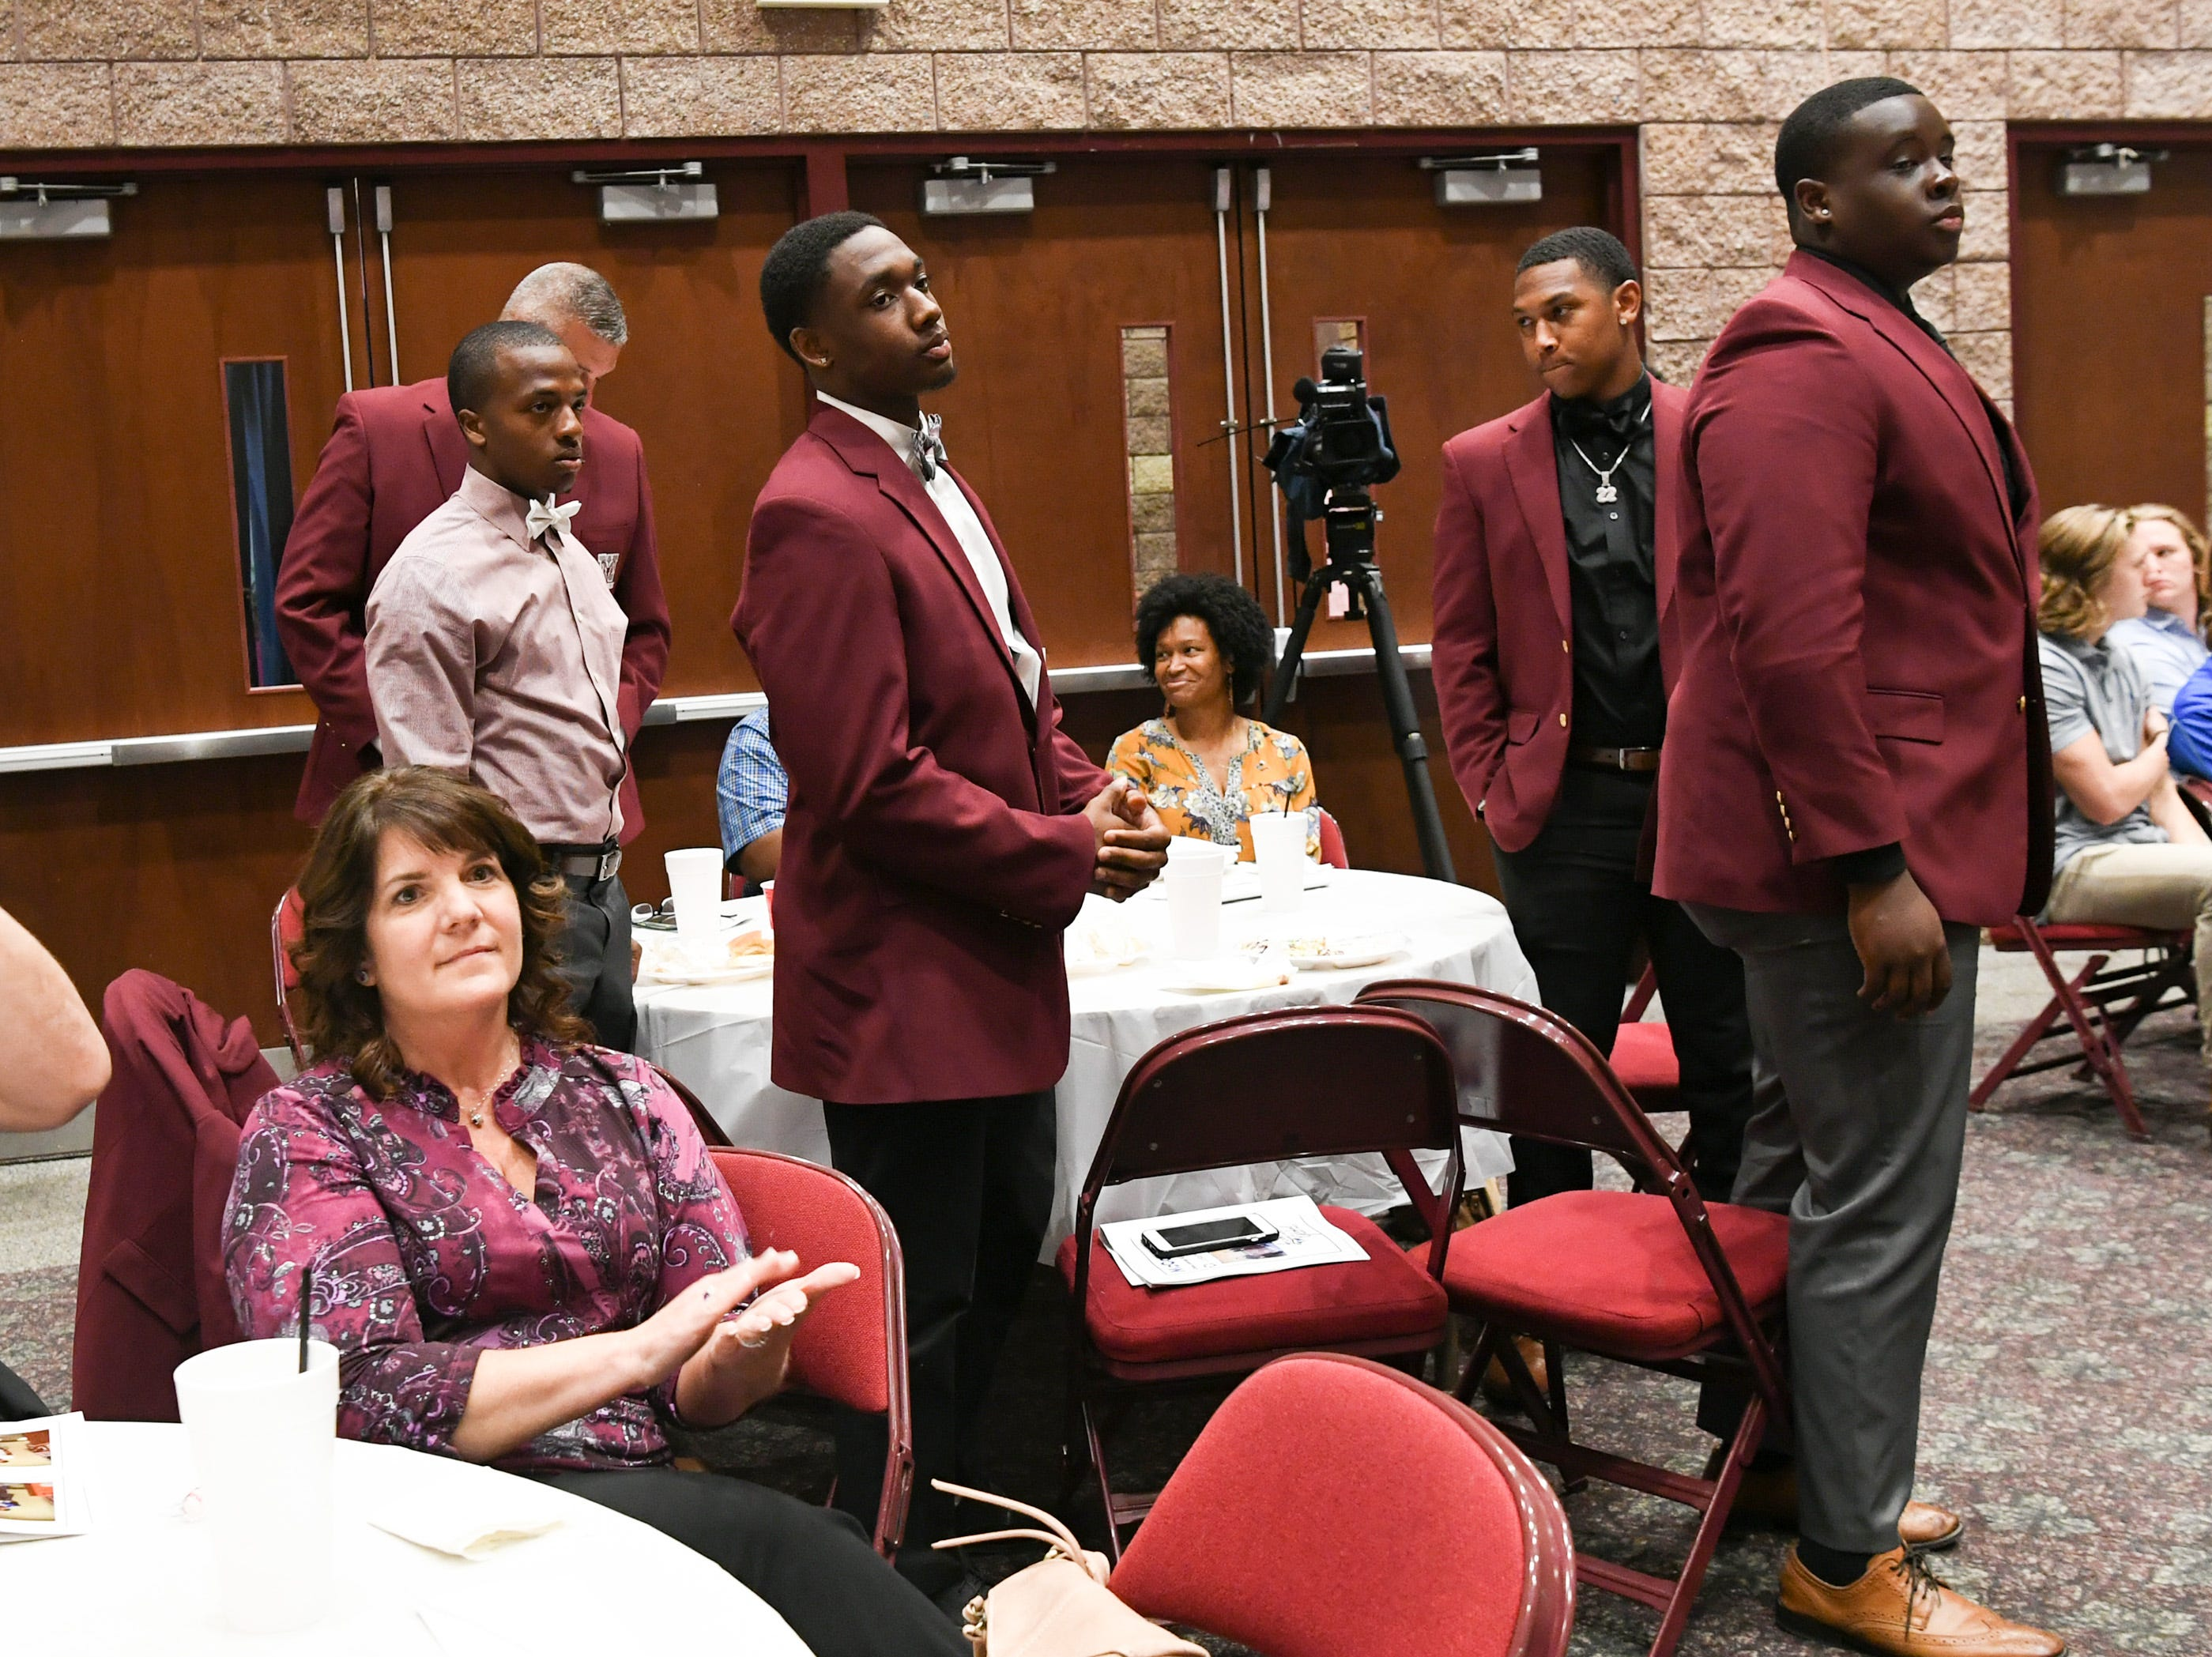 Westside High football players are recognized during the Anderson Area Touchdown Club Annual Awards Banquet at the Anderson County Civic Center Monday, April 8th, 2019. Awards were given to the Players of the Year and the Coach of the Year from the eight Anderson County high schools.